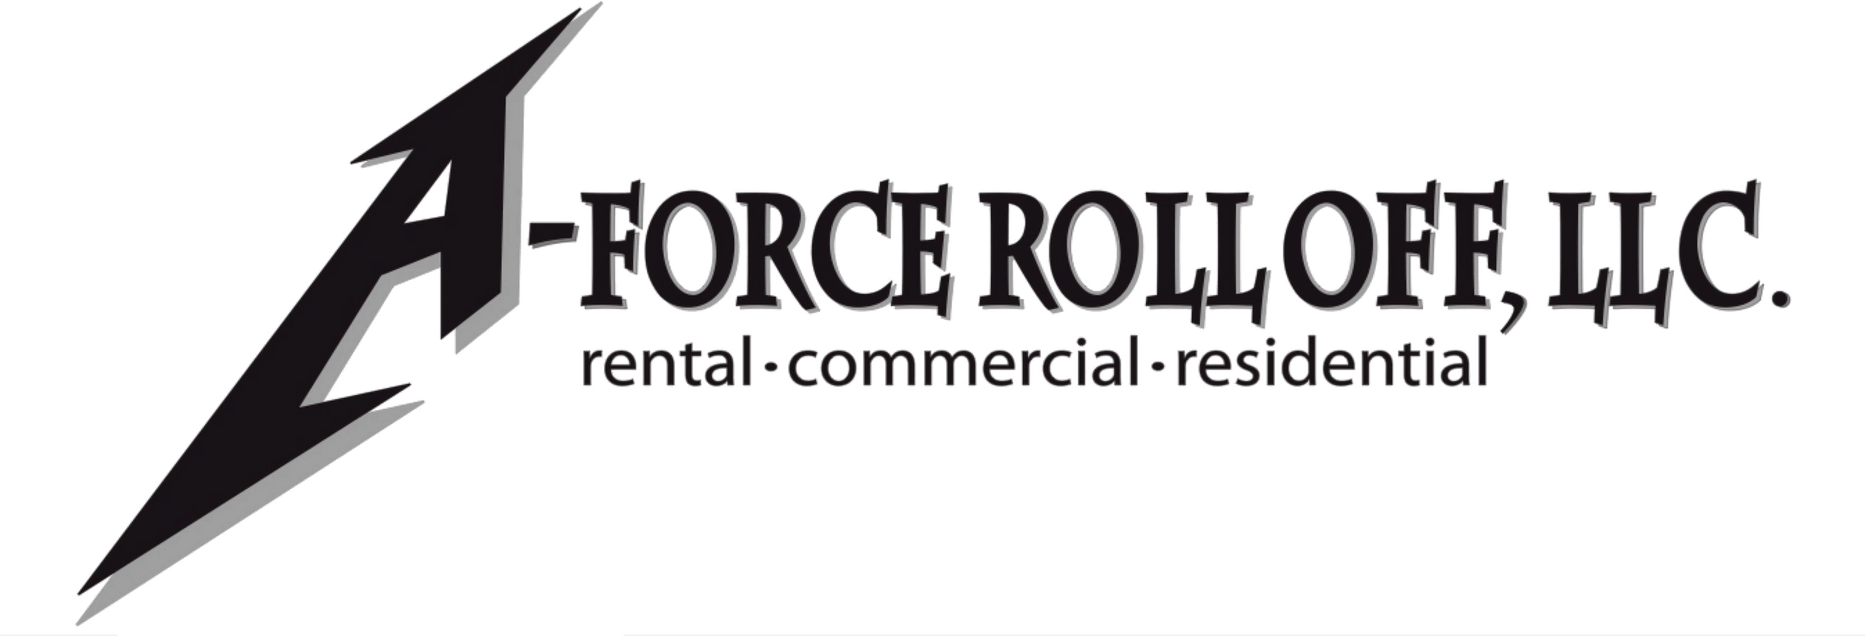 A-Force Roll Off, LLC.